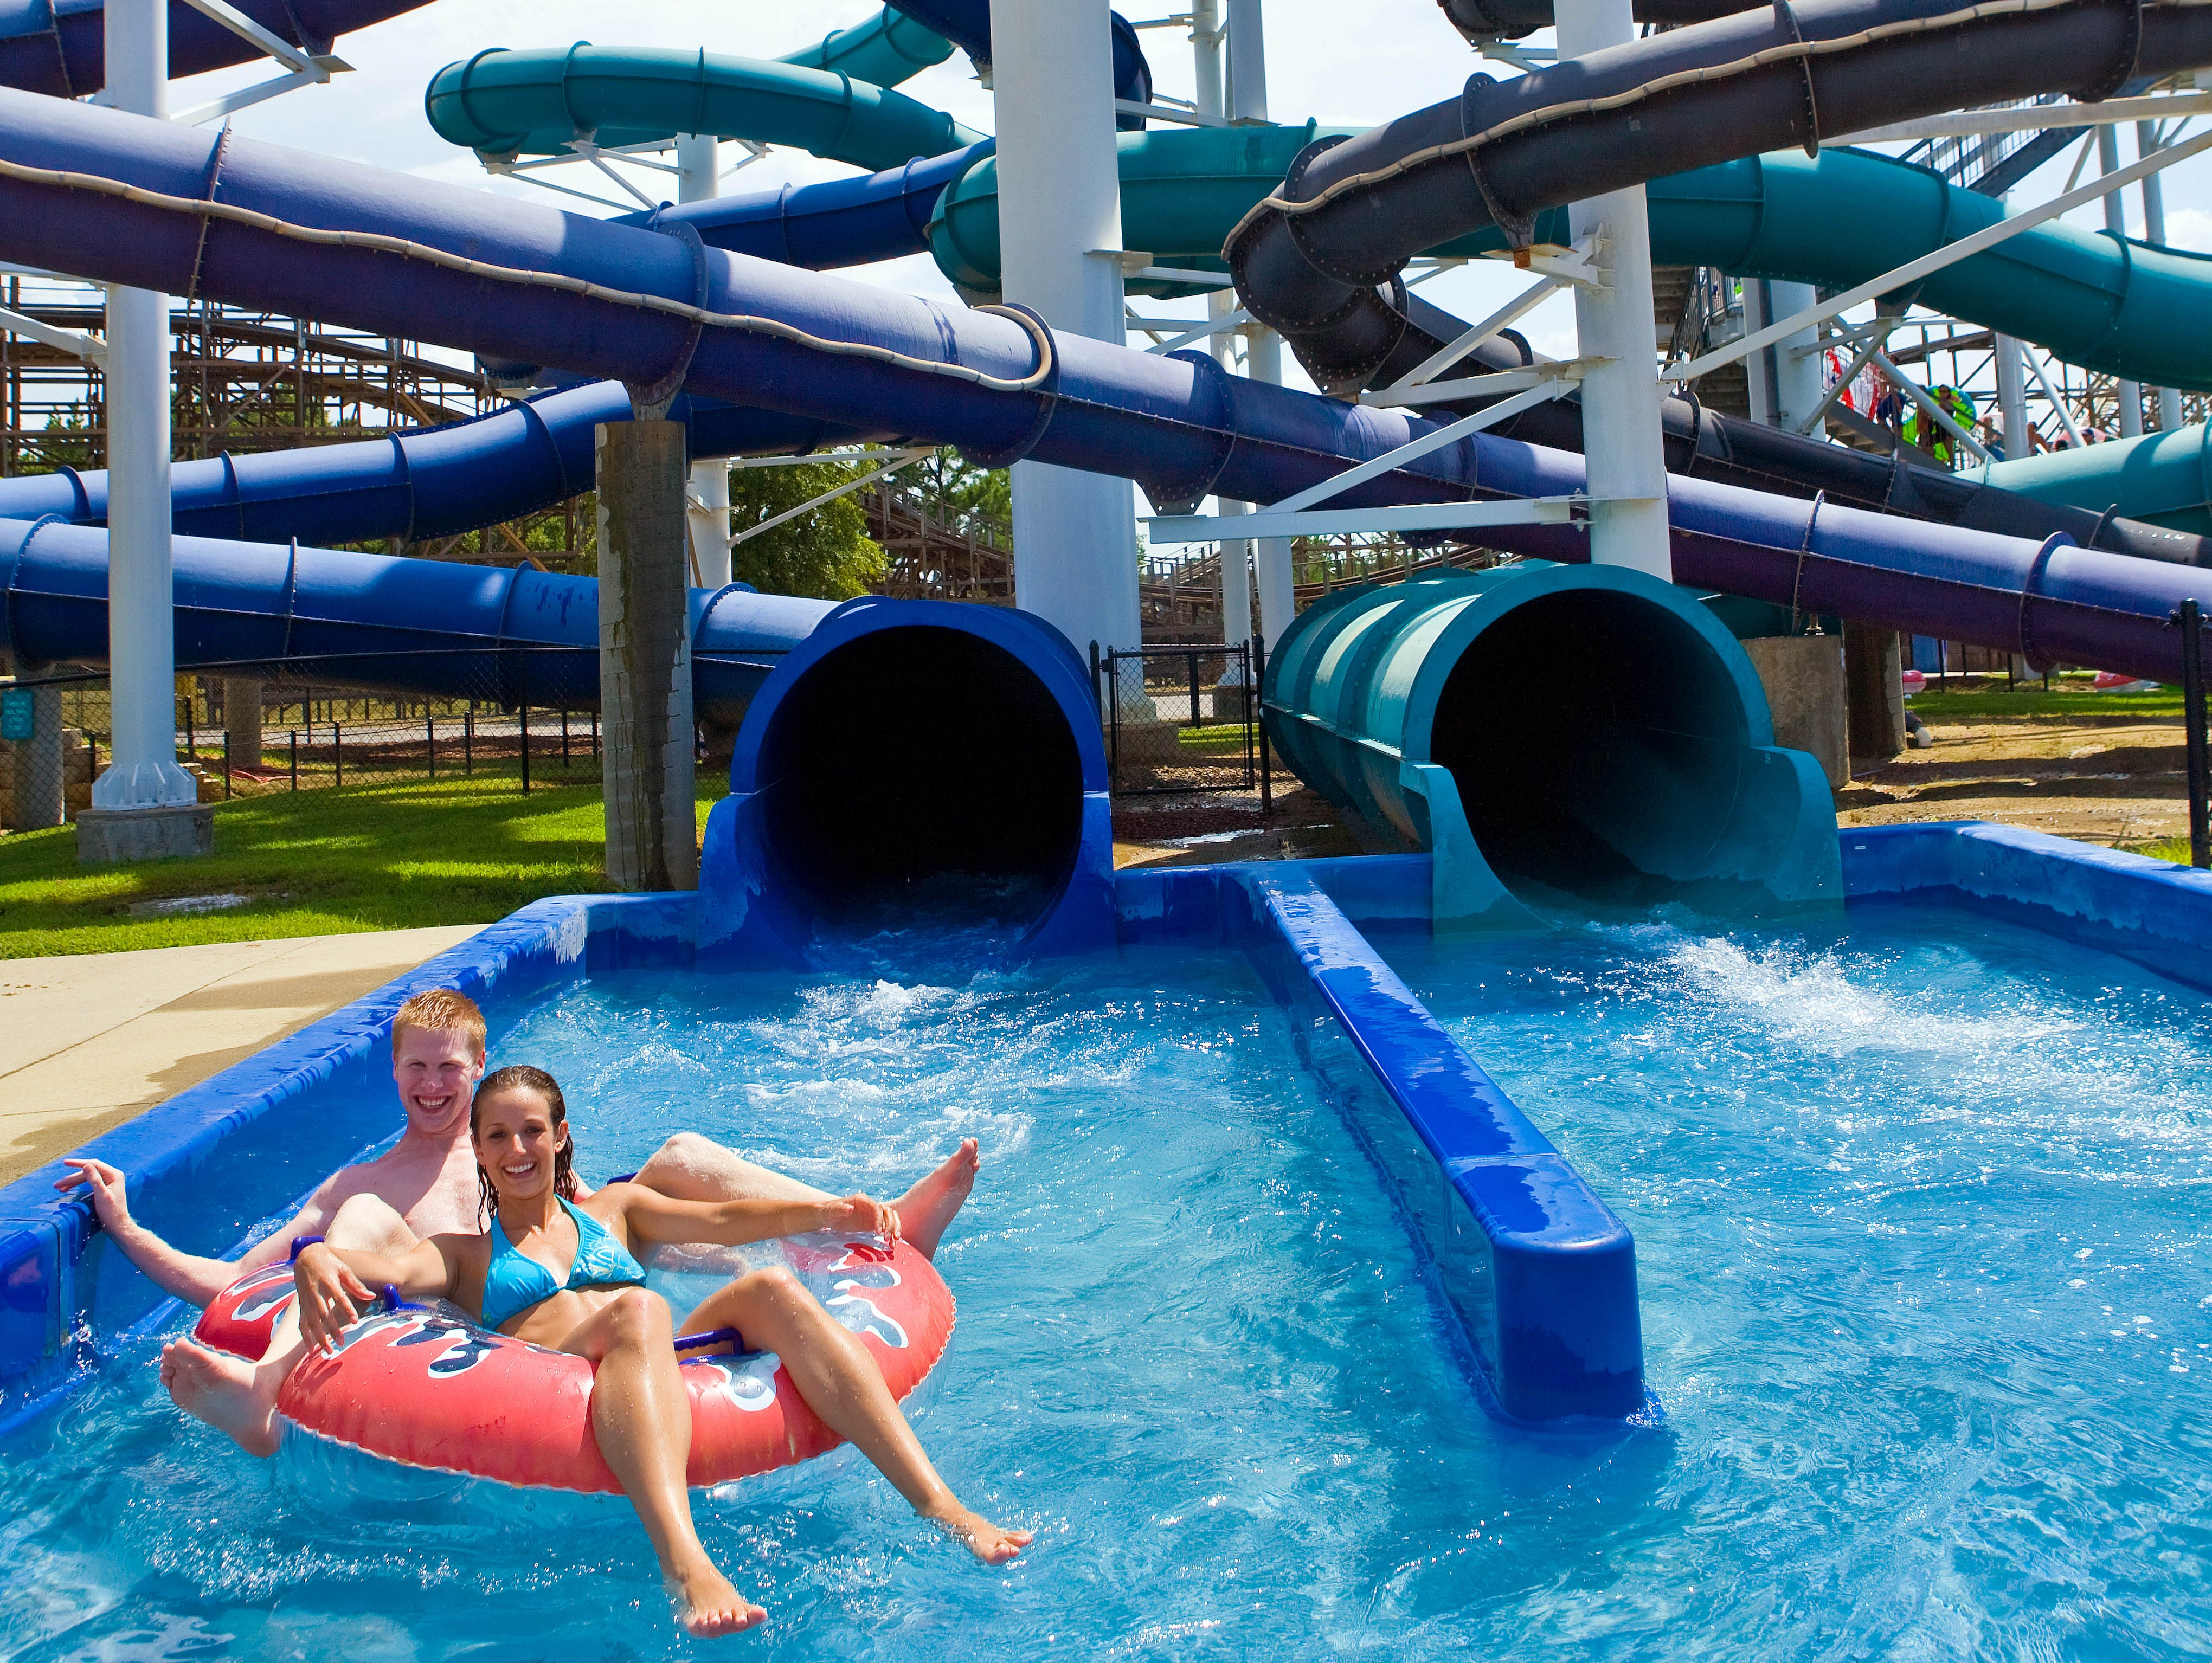 Greenville News Insiders, check out ourexclusive ticket deals and discounts toCarowinds!